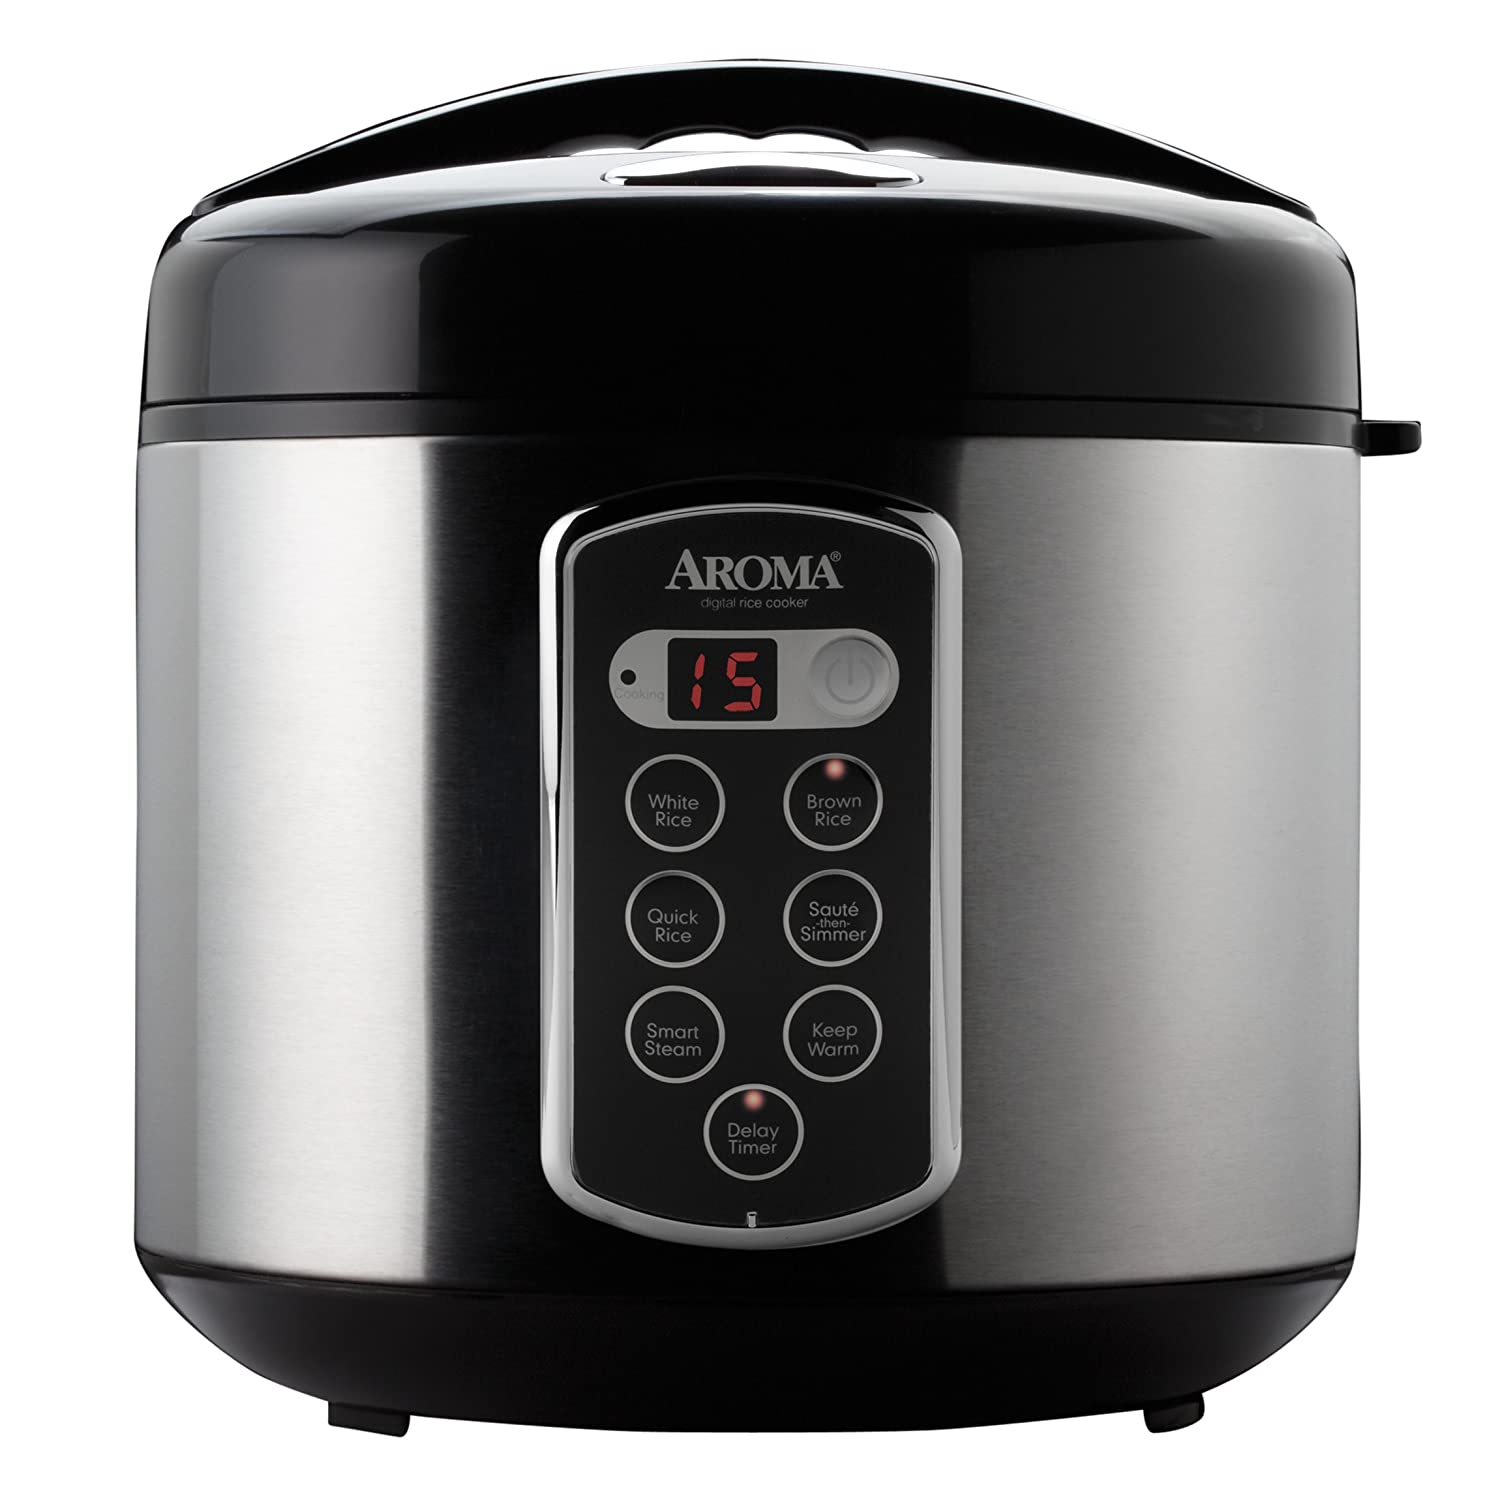 Aroma ARC-2000SB 20-Cup, Cooked Sensor Logic Rice Cooker and Food Steamer Aroma Housewares